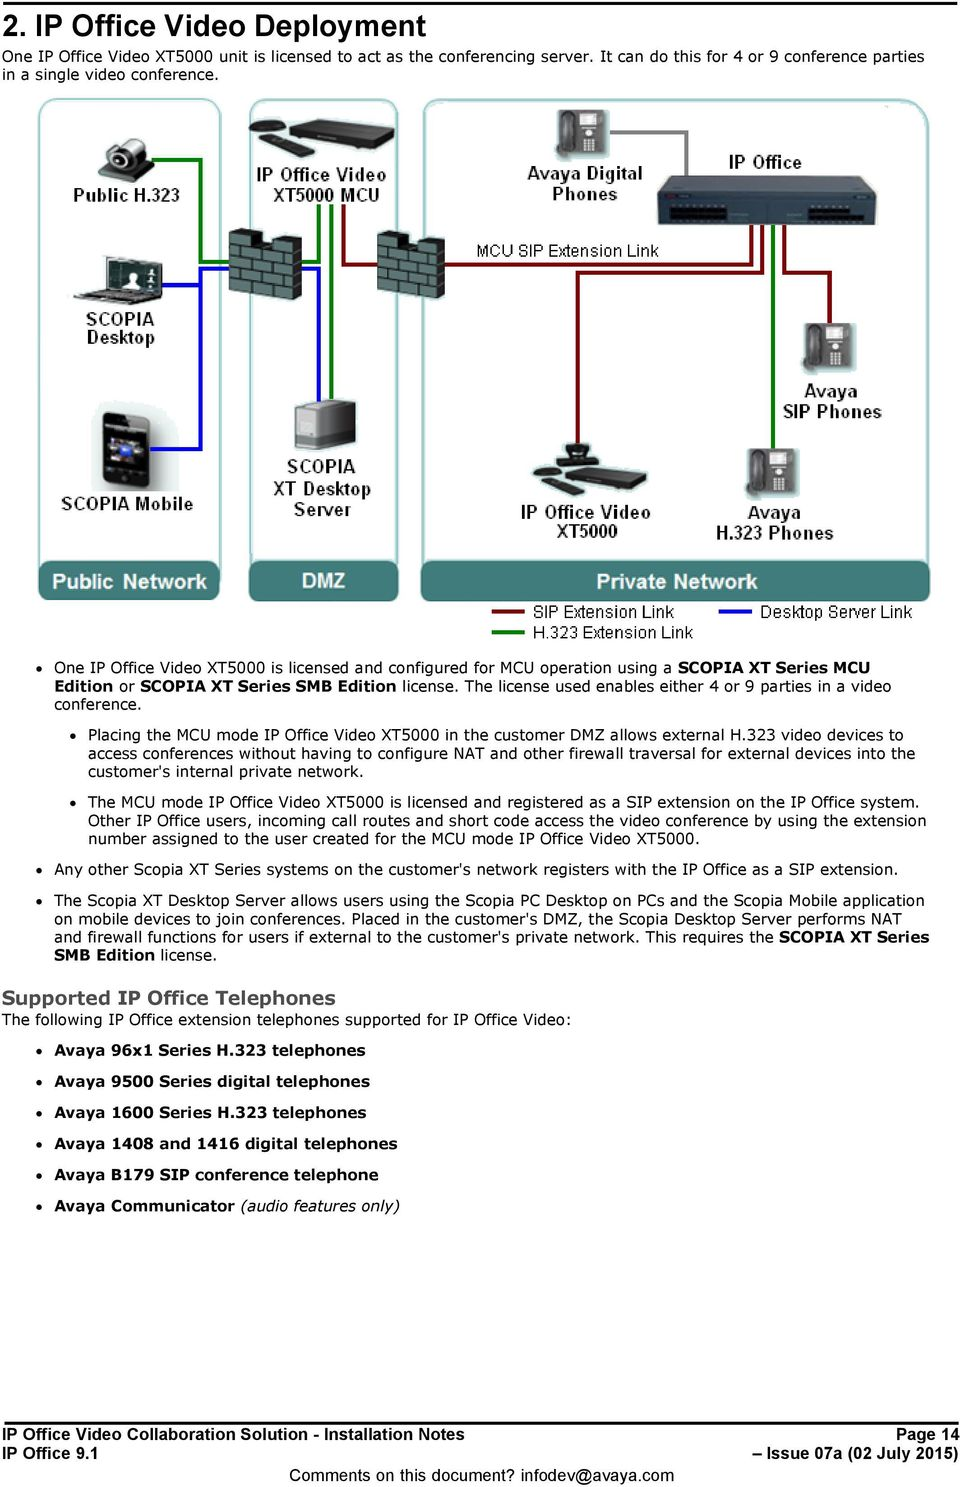 The license used enables either 4 or 9 parties in a video conference. Placing the MCU mode IP Office Video XT5000 in the customer DMZ allows external H.